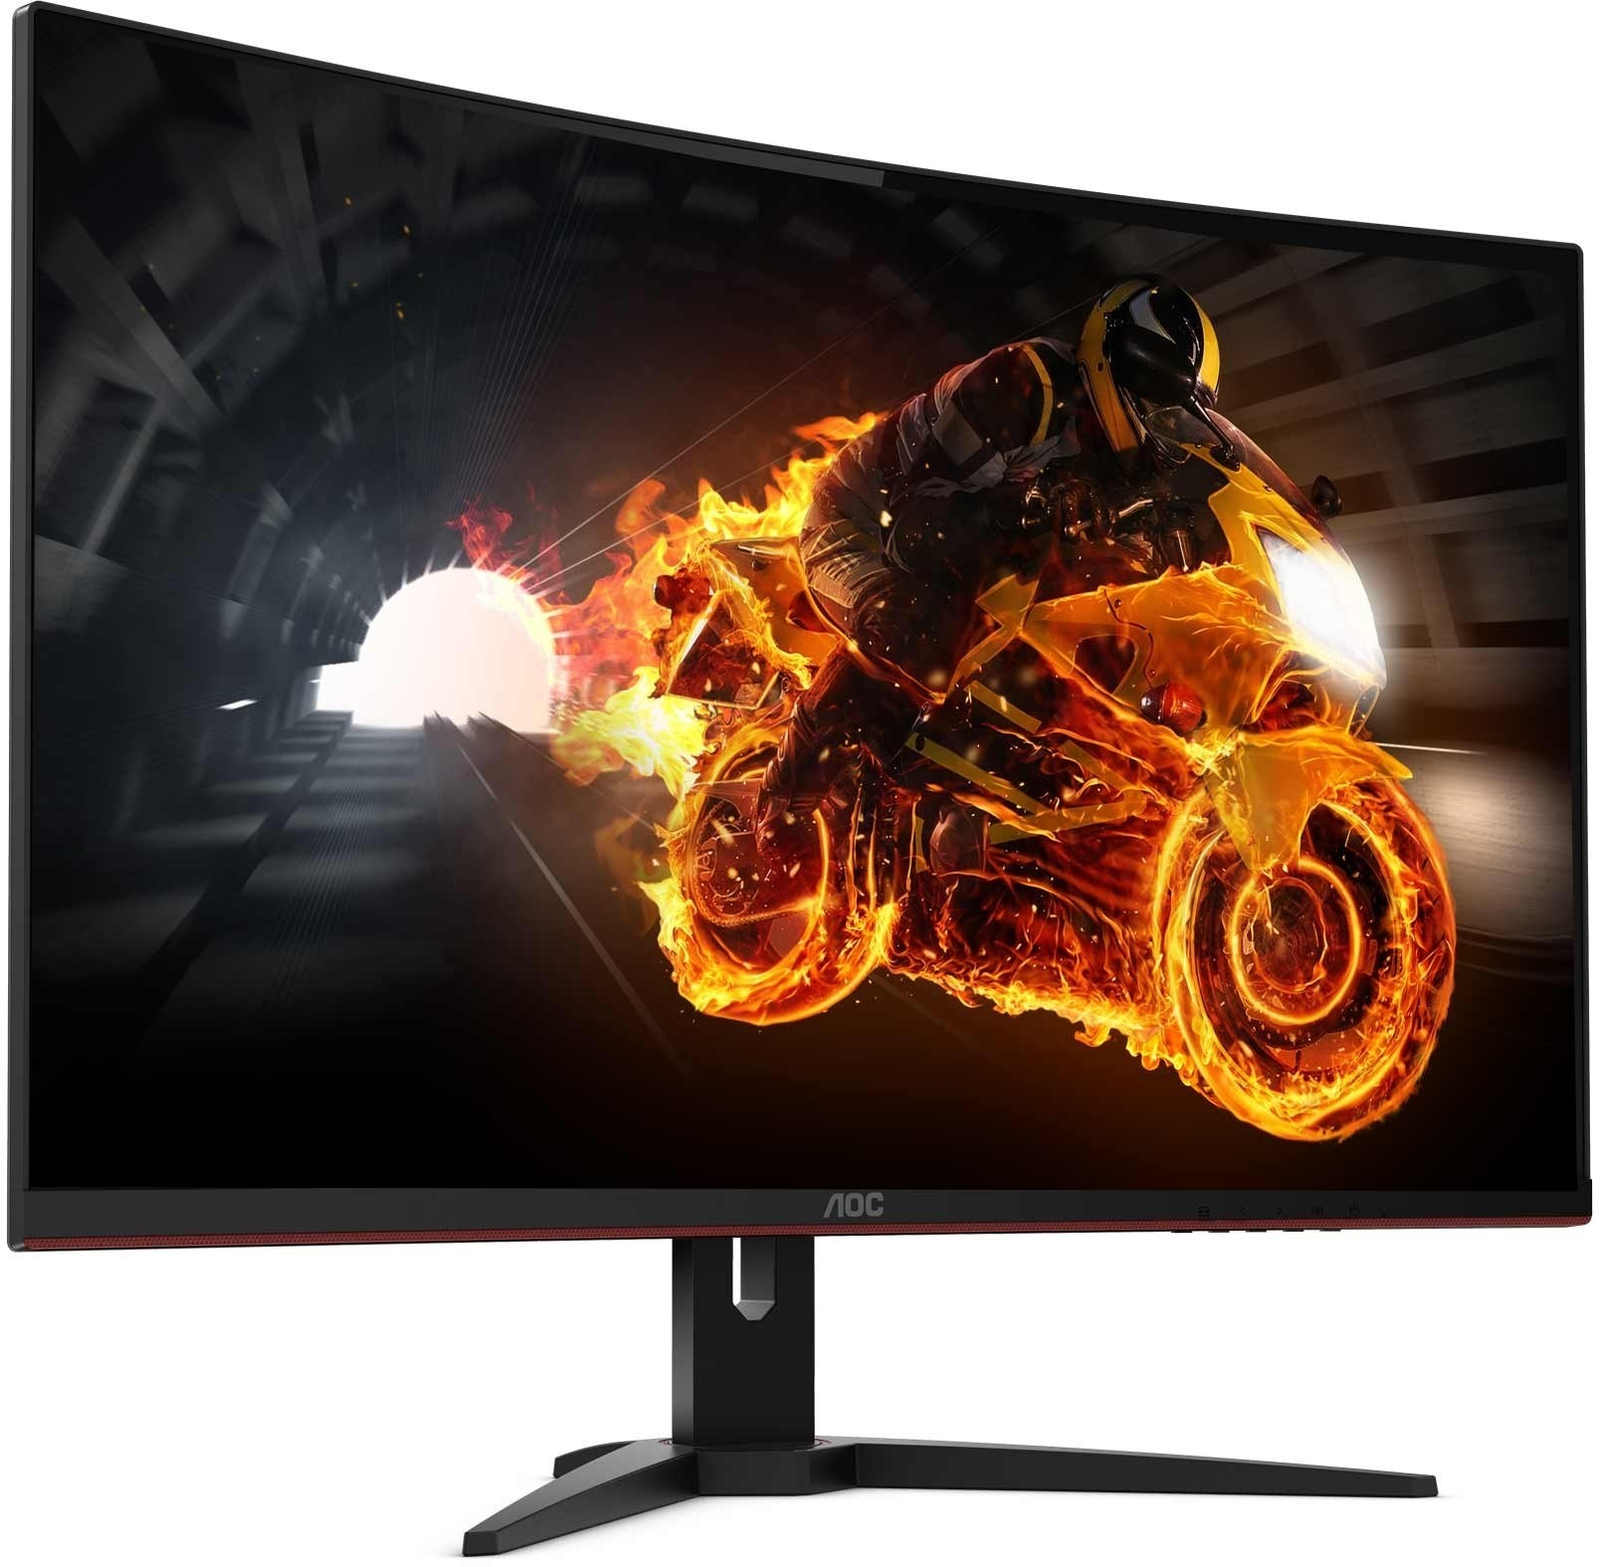 """31.5"""" AOC 2560x1440 144Hz 1ms FreeSync Curved Gaming Monitor image"""